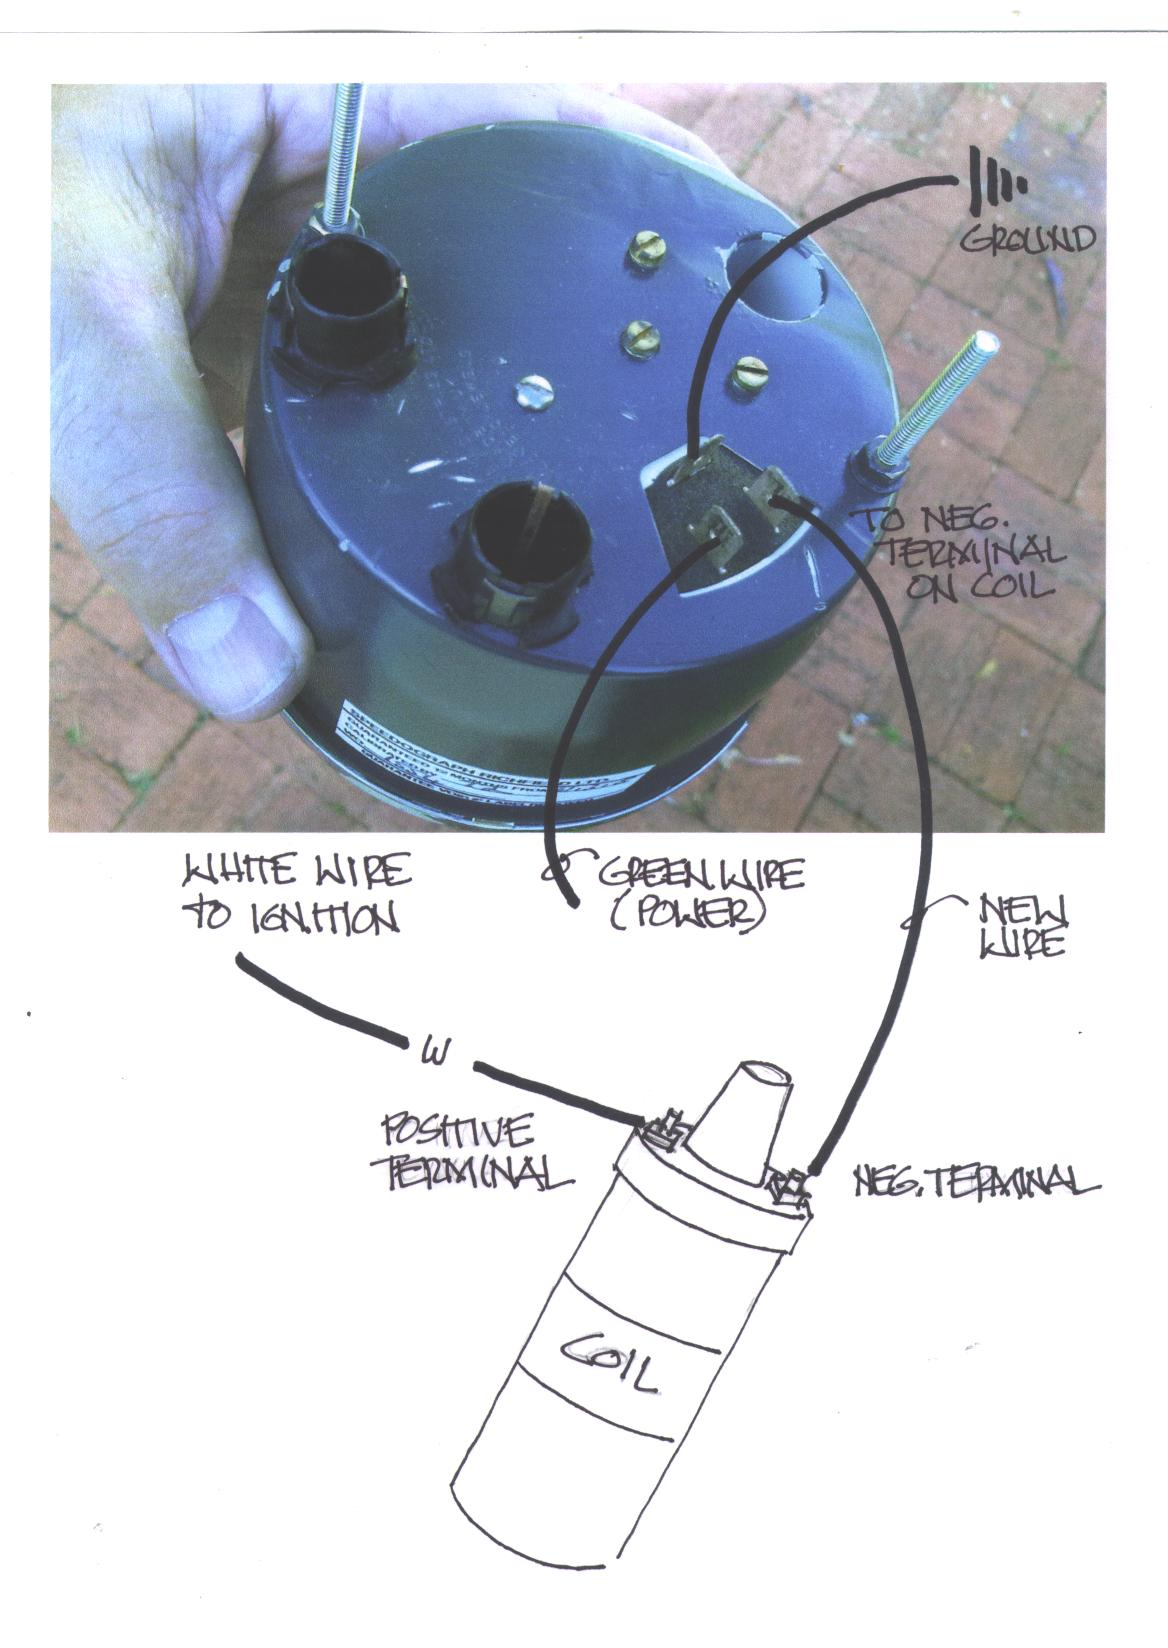 Lotus Elan Tachometer Wiring Trusted Diagrams Diagram I Should Leave Well Enough Alone Discussions Page 2 By Harley Schematic